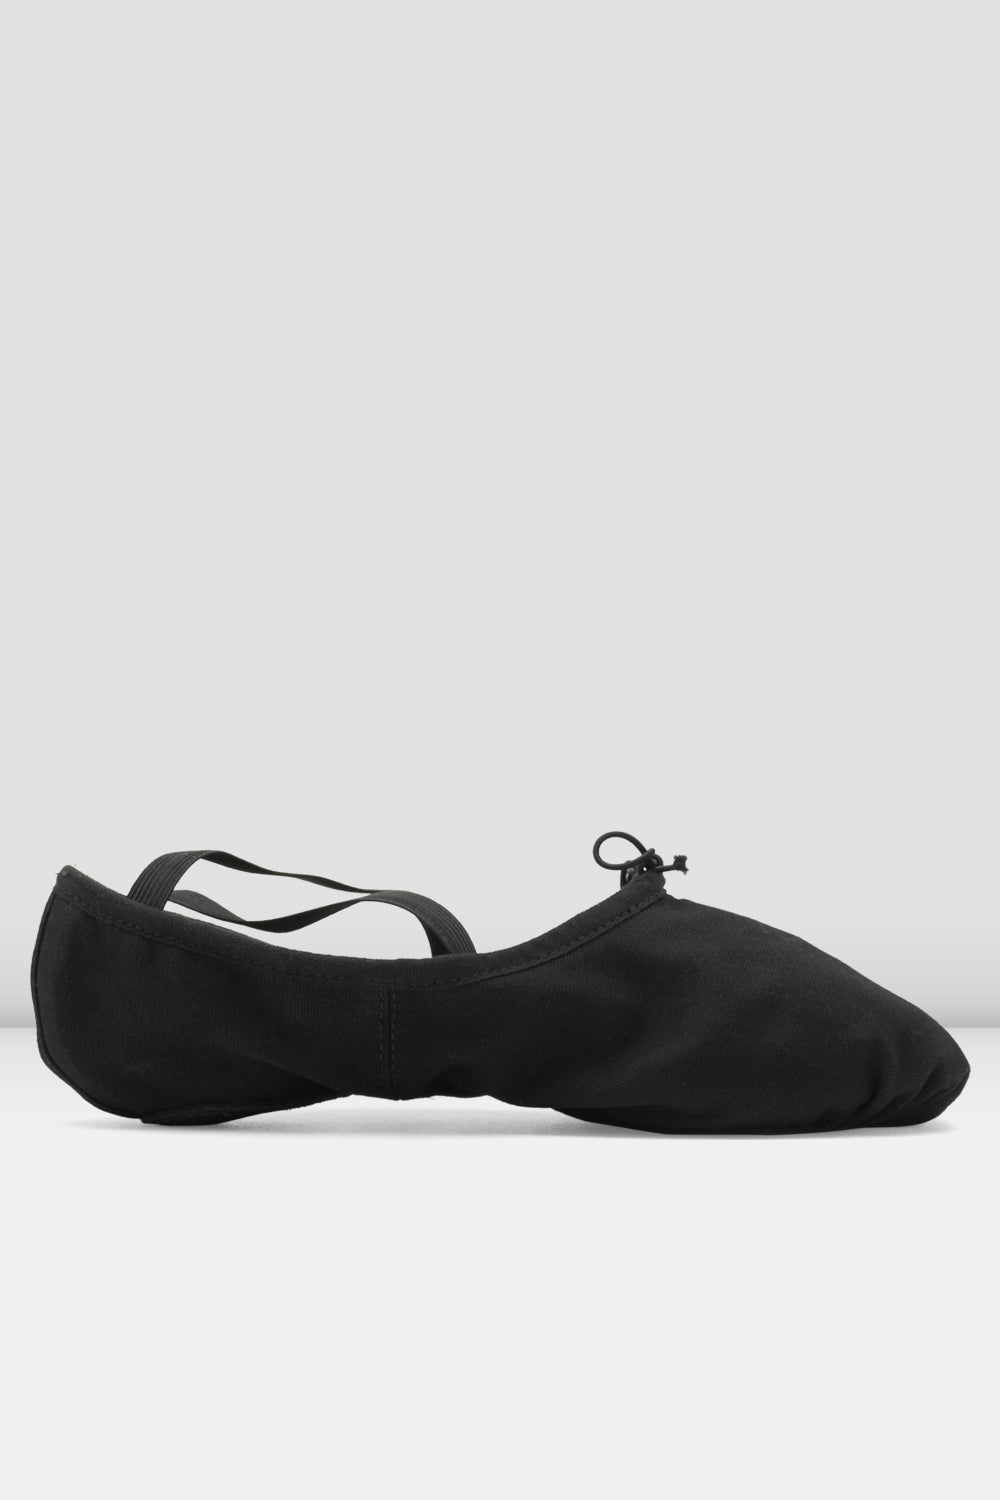 Ladies Pump Canvas Ballet Shoes - BLOCH US